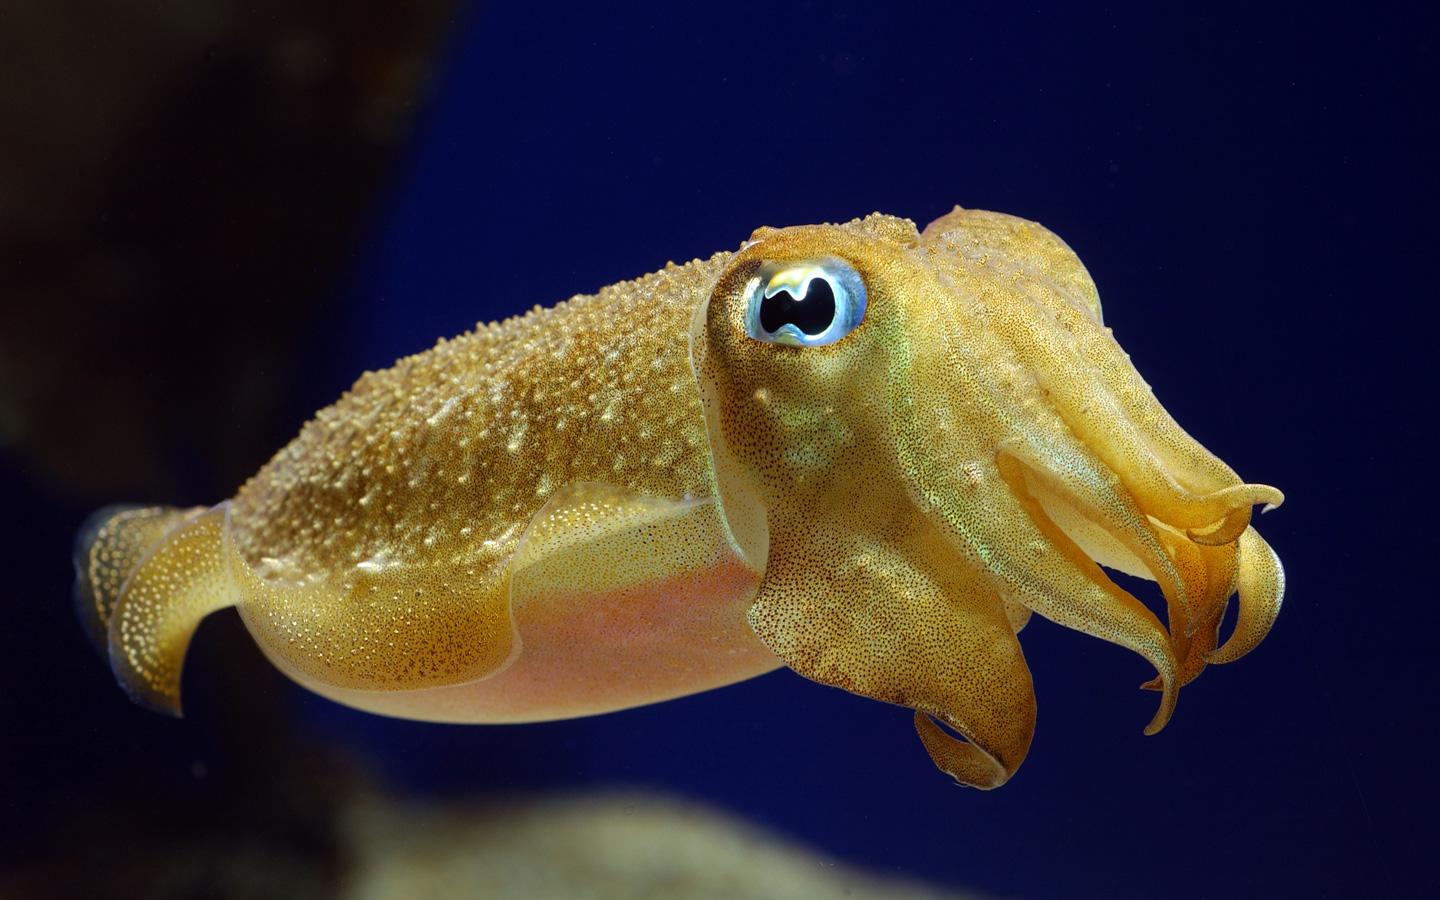 Cuttlefish camouflage: A new method for studying the masters of disguise